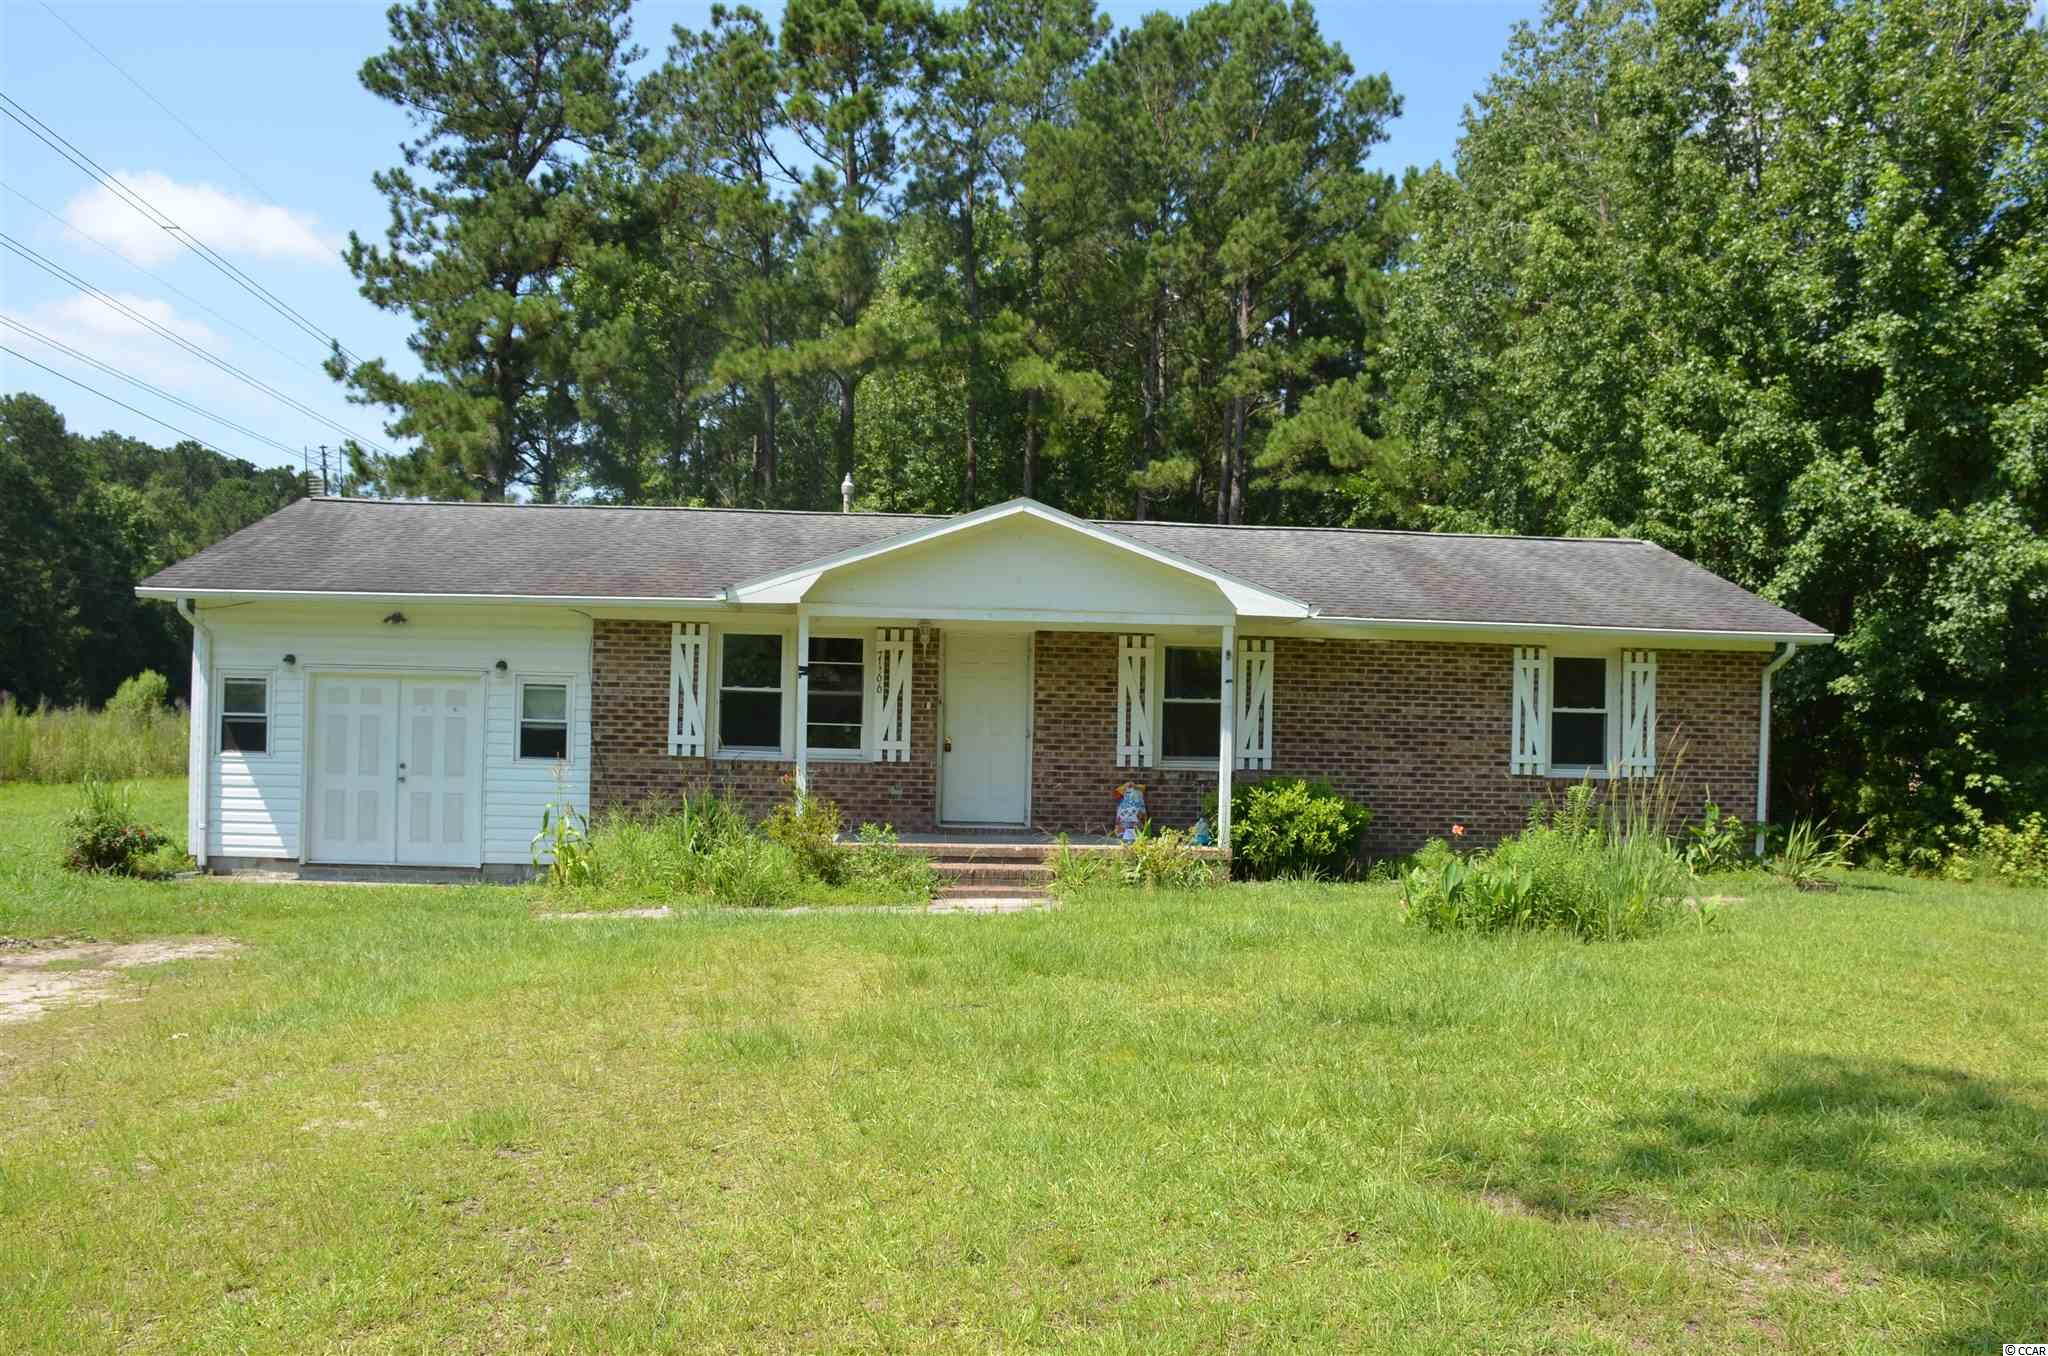 Incredible value! Less than 15 minutes to downtown Conway! Homes needs a little TLC, with a little cosmetic updating, this home will have tremendous value! Already priced to sell. Get with your agent ASAP before you miss this rare opportunity in a market like this!